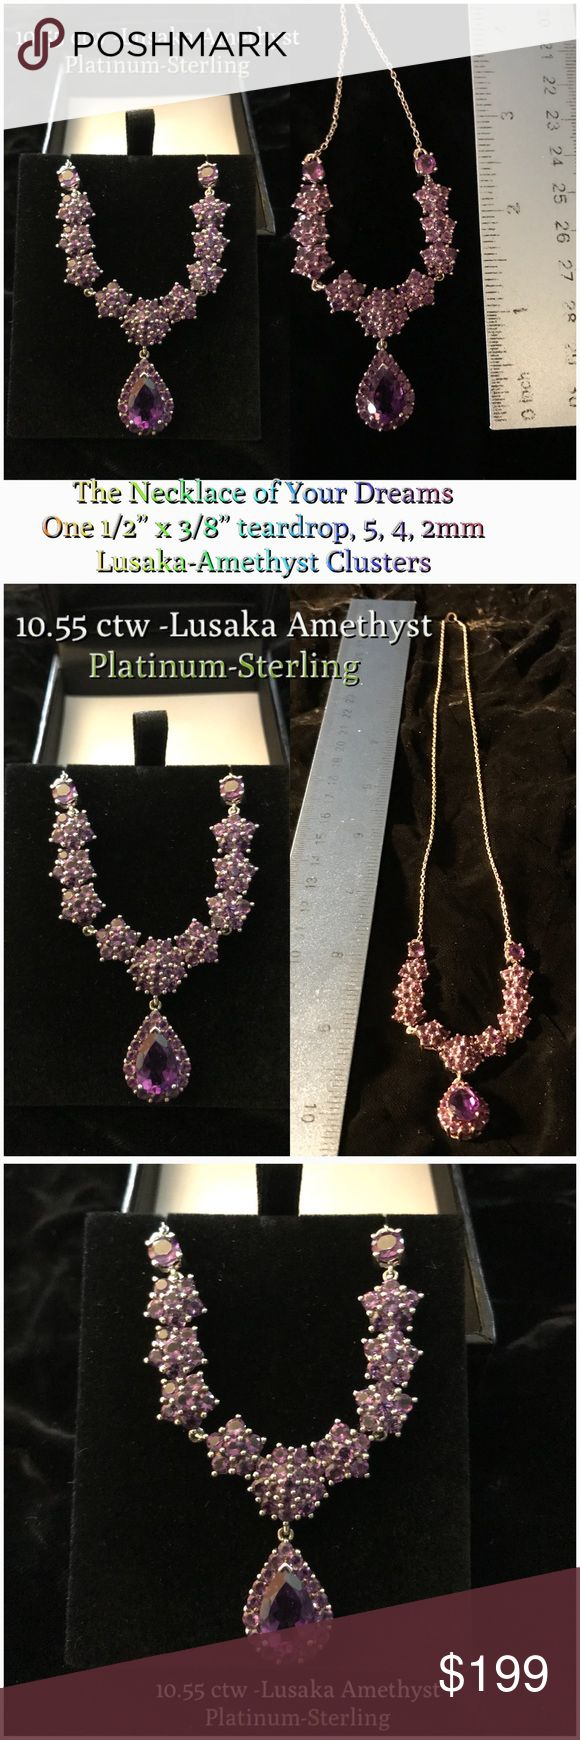 """Platinum-Sterling Lusaka Amethyst Necklace 10.55 carats of regal Lusaka Amethyst fit for a Queen! Set in a platinum-finished sterling-silver necklace to enchant everyone who sees it. Rare & sought after for its pink/red flashes, this amethyst, according to Leonardo Da Vinci, is believed to prevent harm, and to encourage rational thinking. One 1/2"""" x 3/8"""" teardrop, two 5mm rounds, & sixteen 4mm + sixteen 2mm clusters. Platinum over sterling silver; spring-ring clasp hallmarked for sterling…"""